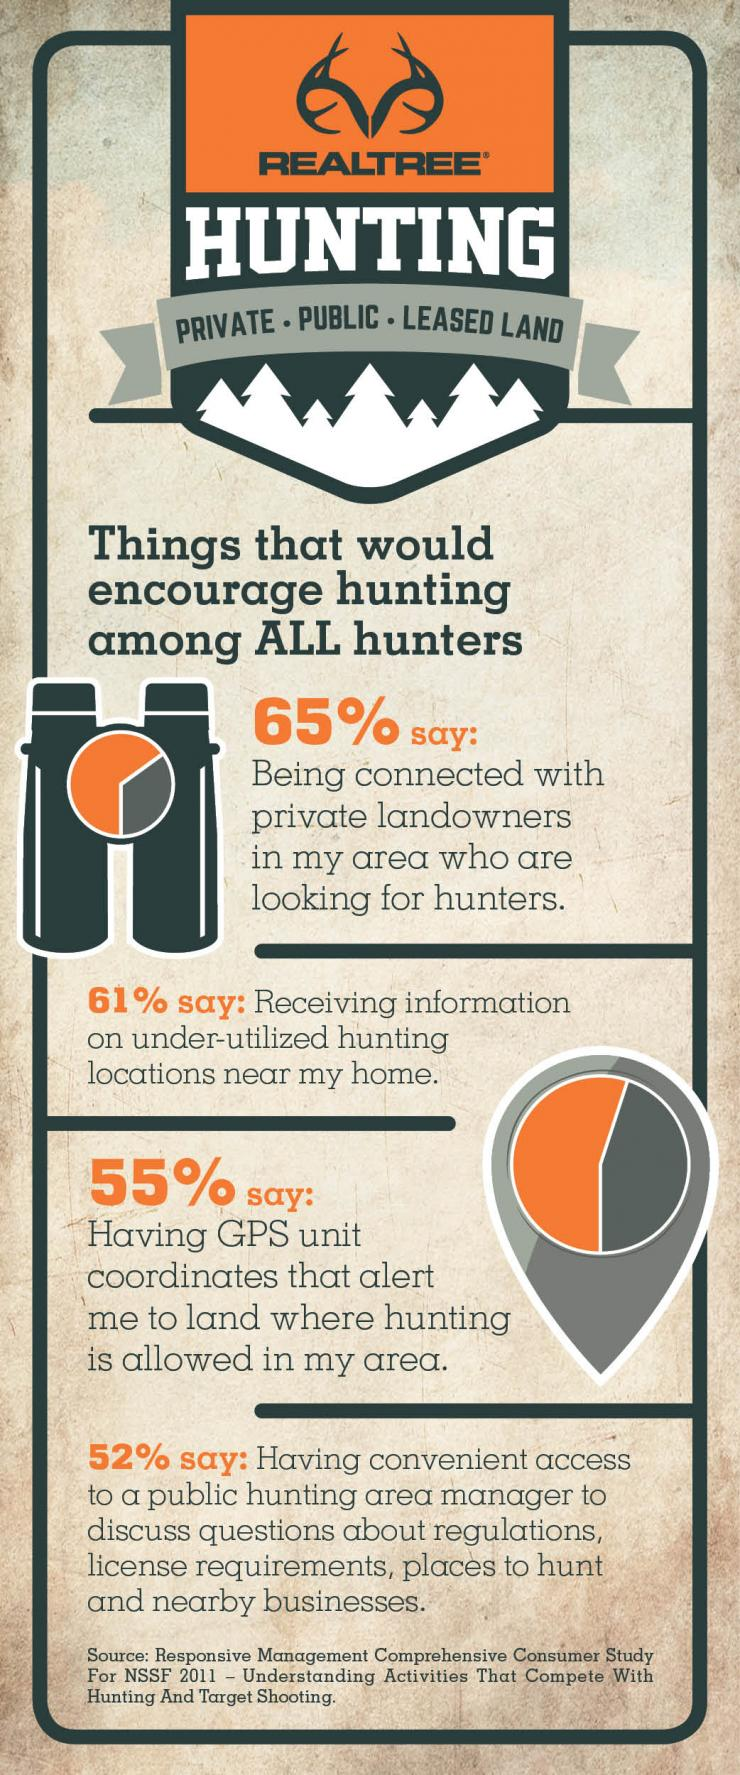 Hunting Land: Things That Would Encourage Hunting Among All Hunters